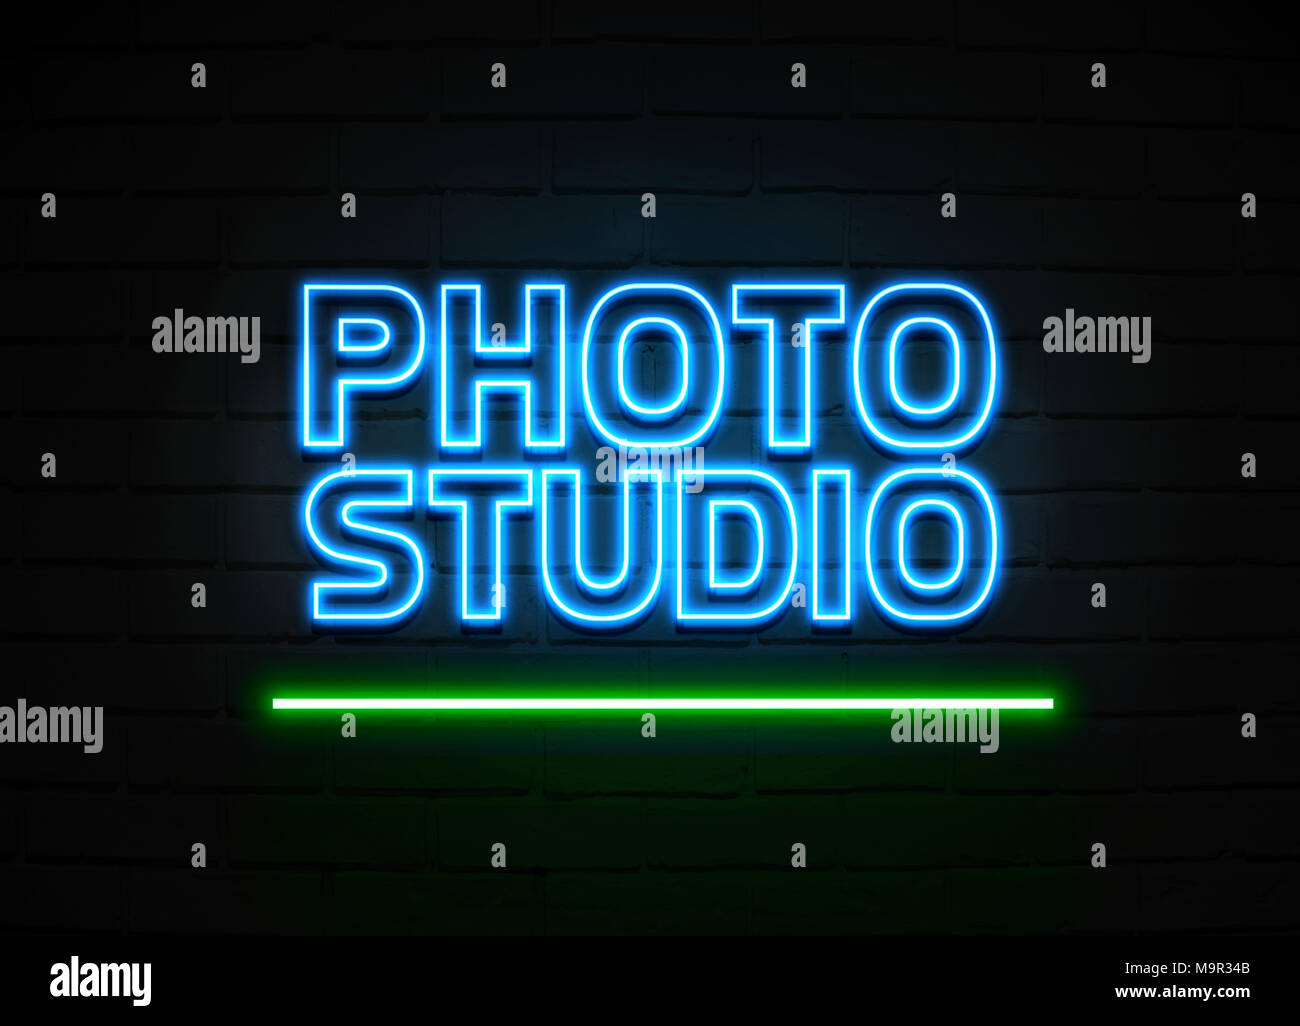 Photo Studio neon sign - Glowing Neon Sign on brickwall wall - 3D rendered royalty free stock illustration. Stock Photo